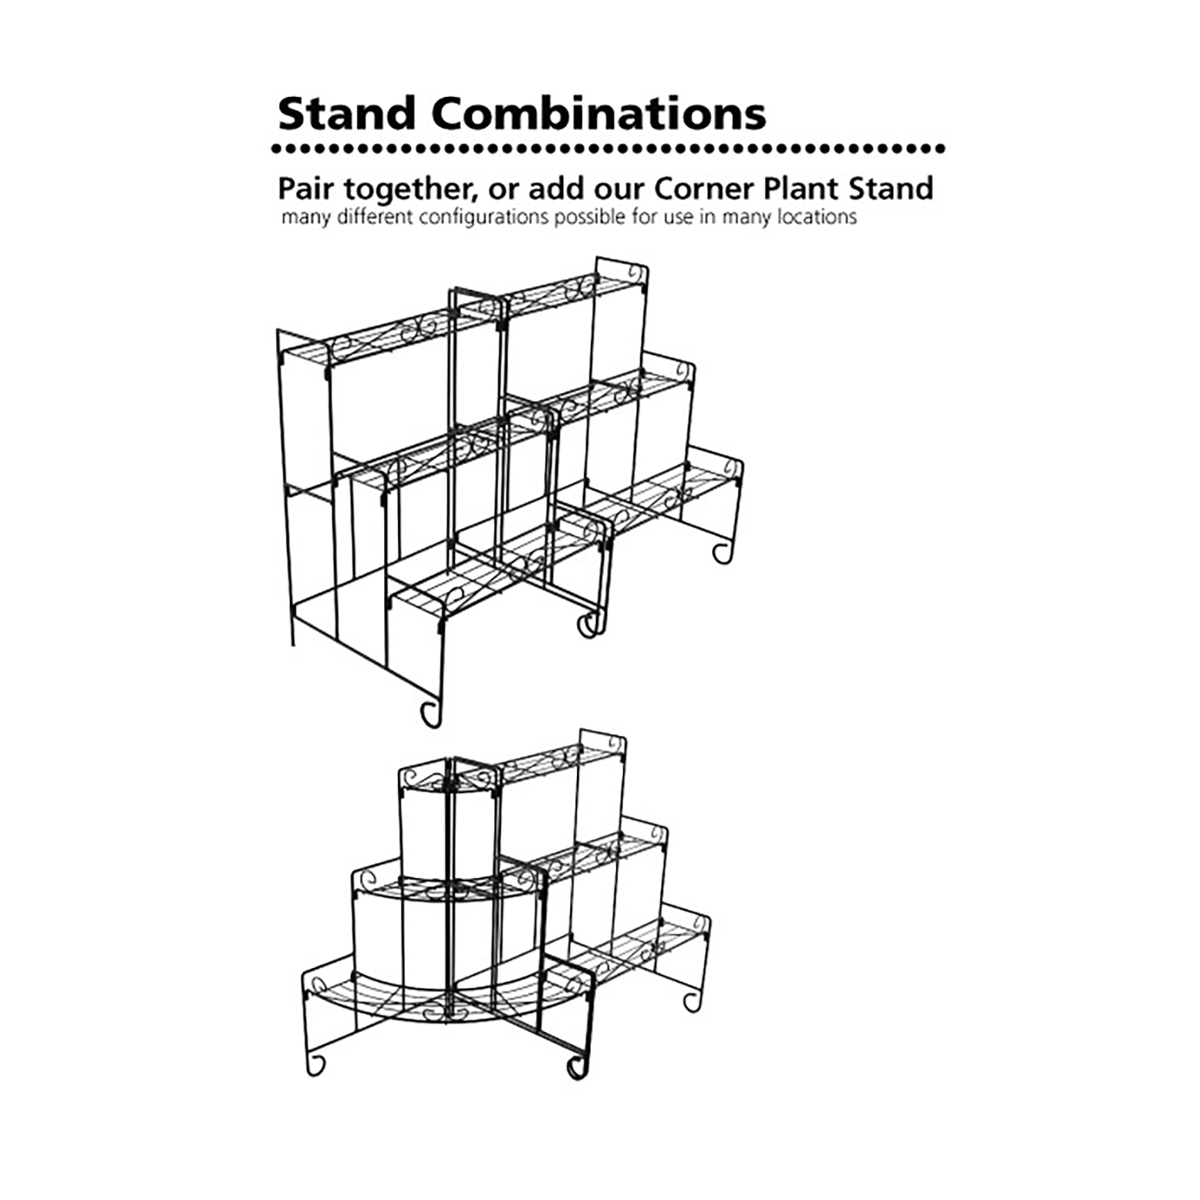 18197 Plant Stand Wall configurations